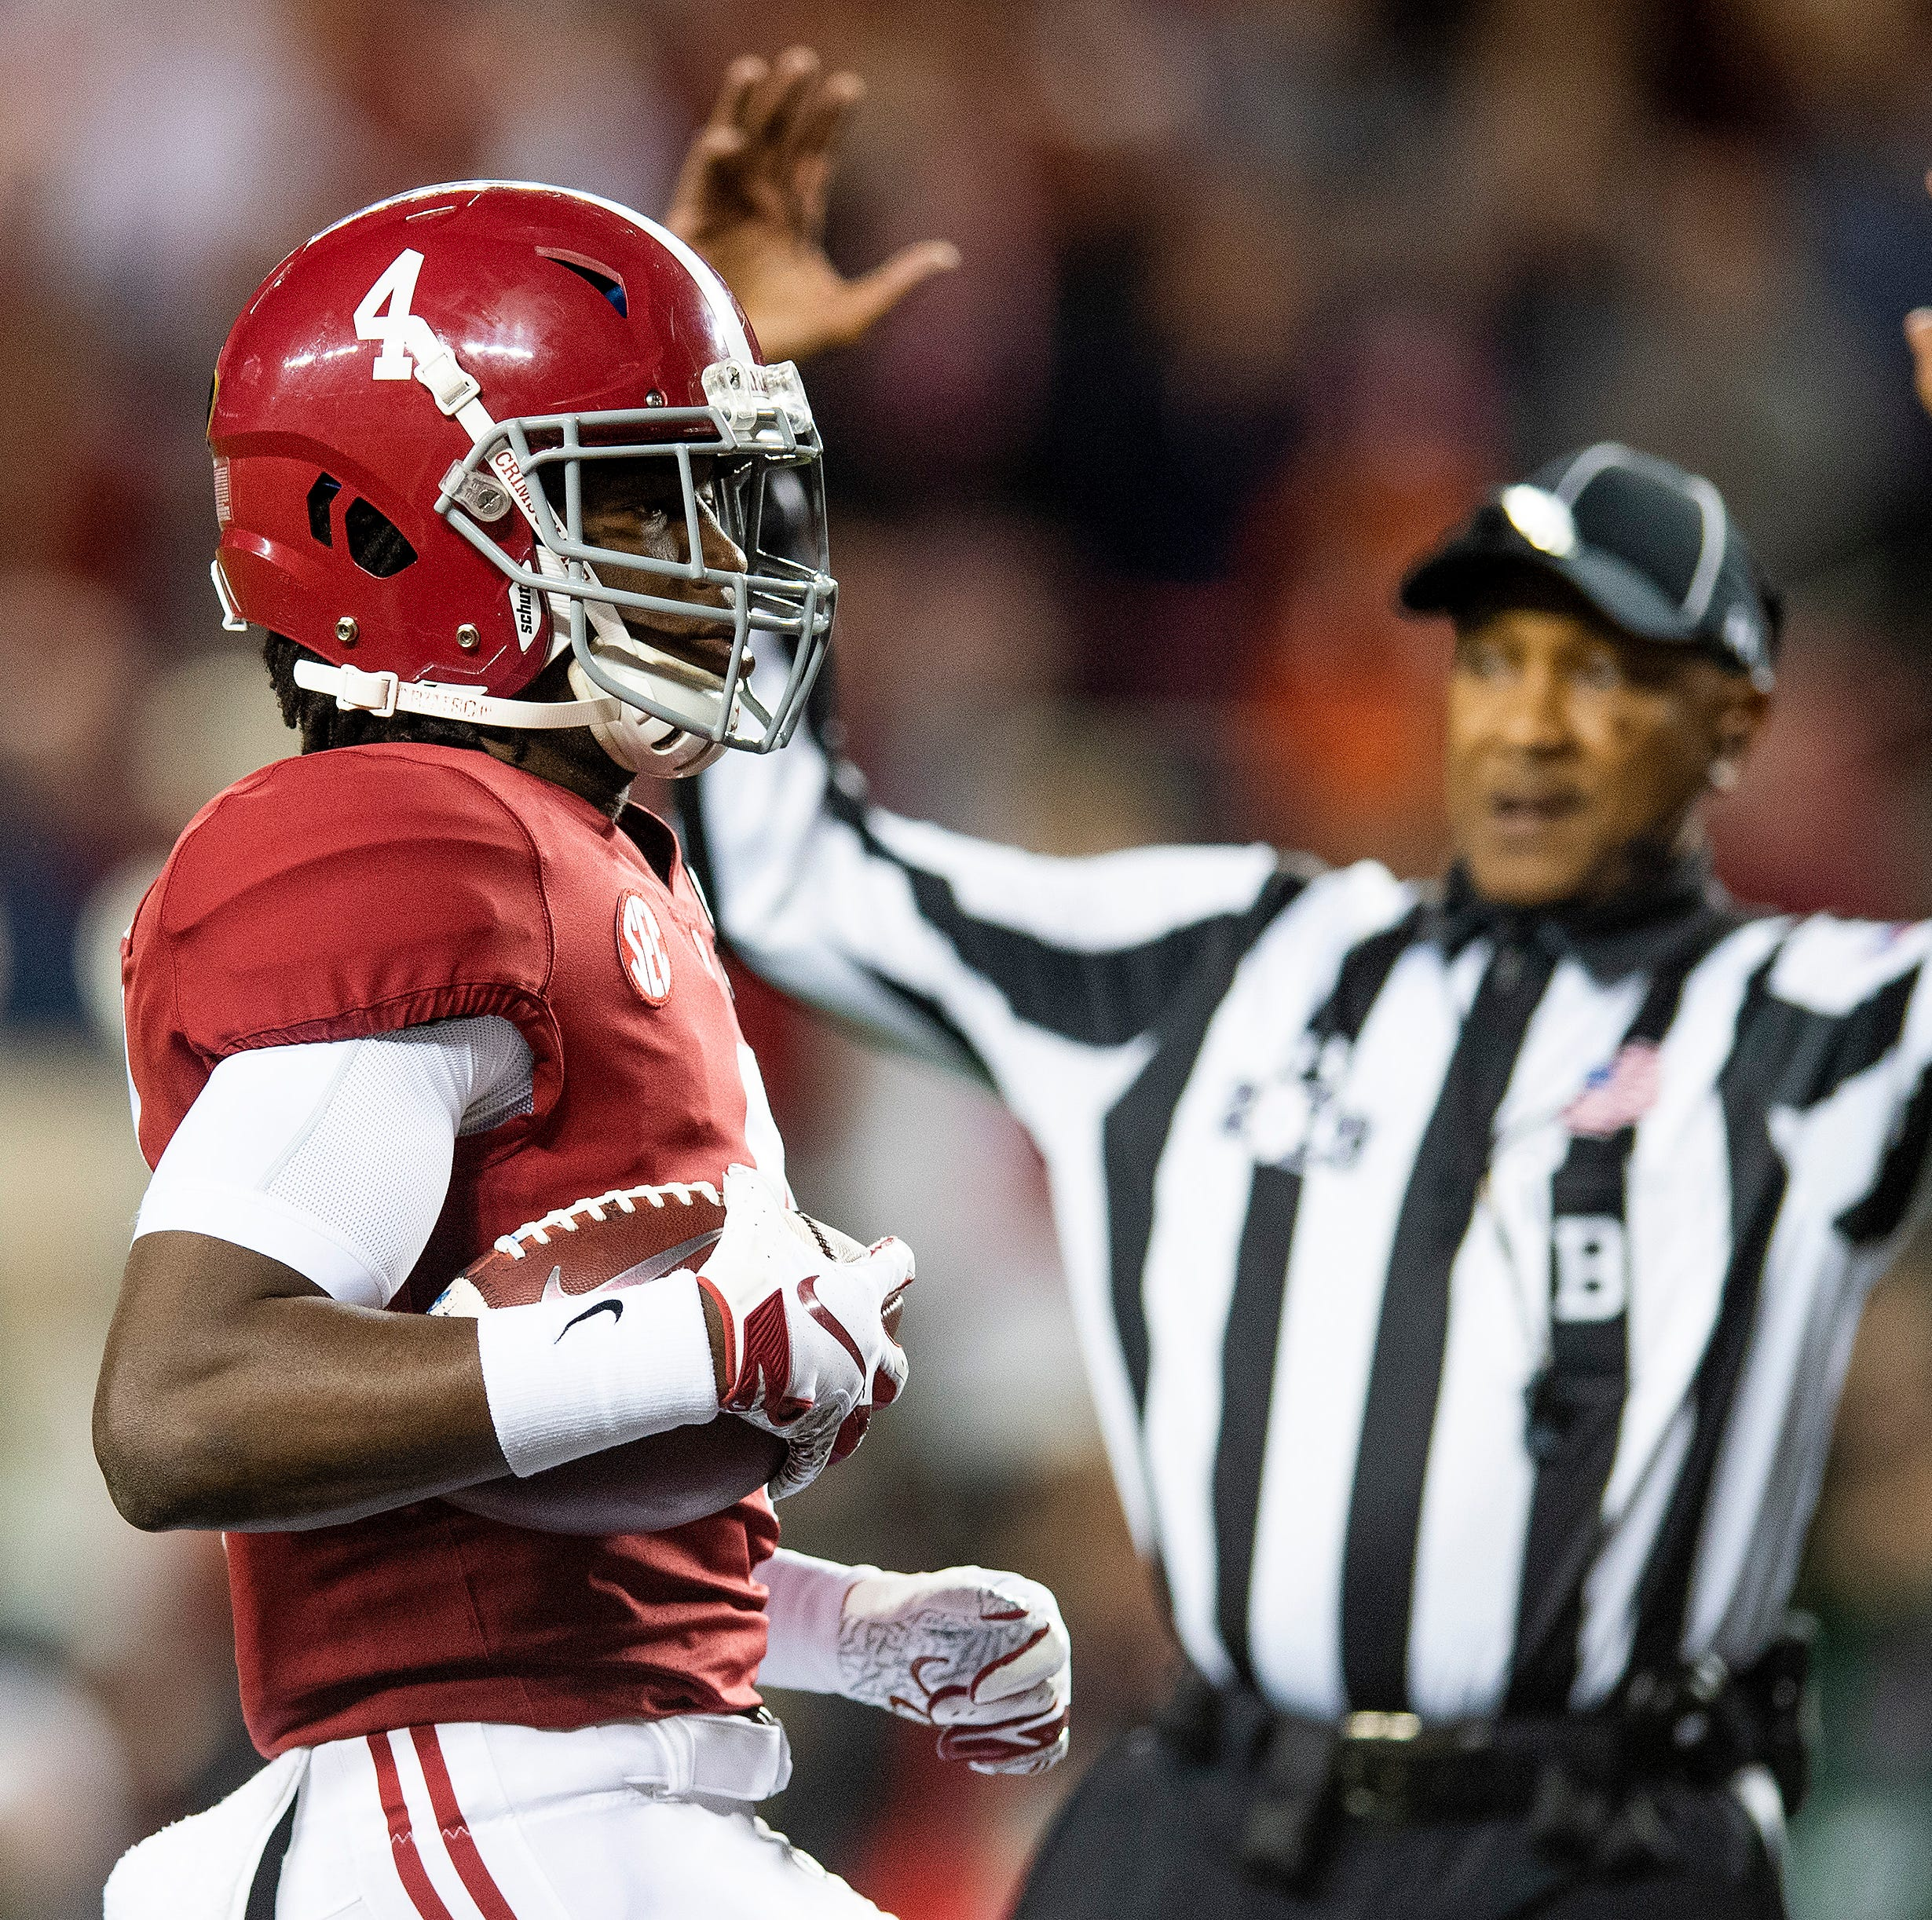 Alabama's 2019 Spring position preview: Stocked WR corps, uncertainty at TE lead pass attack